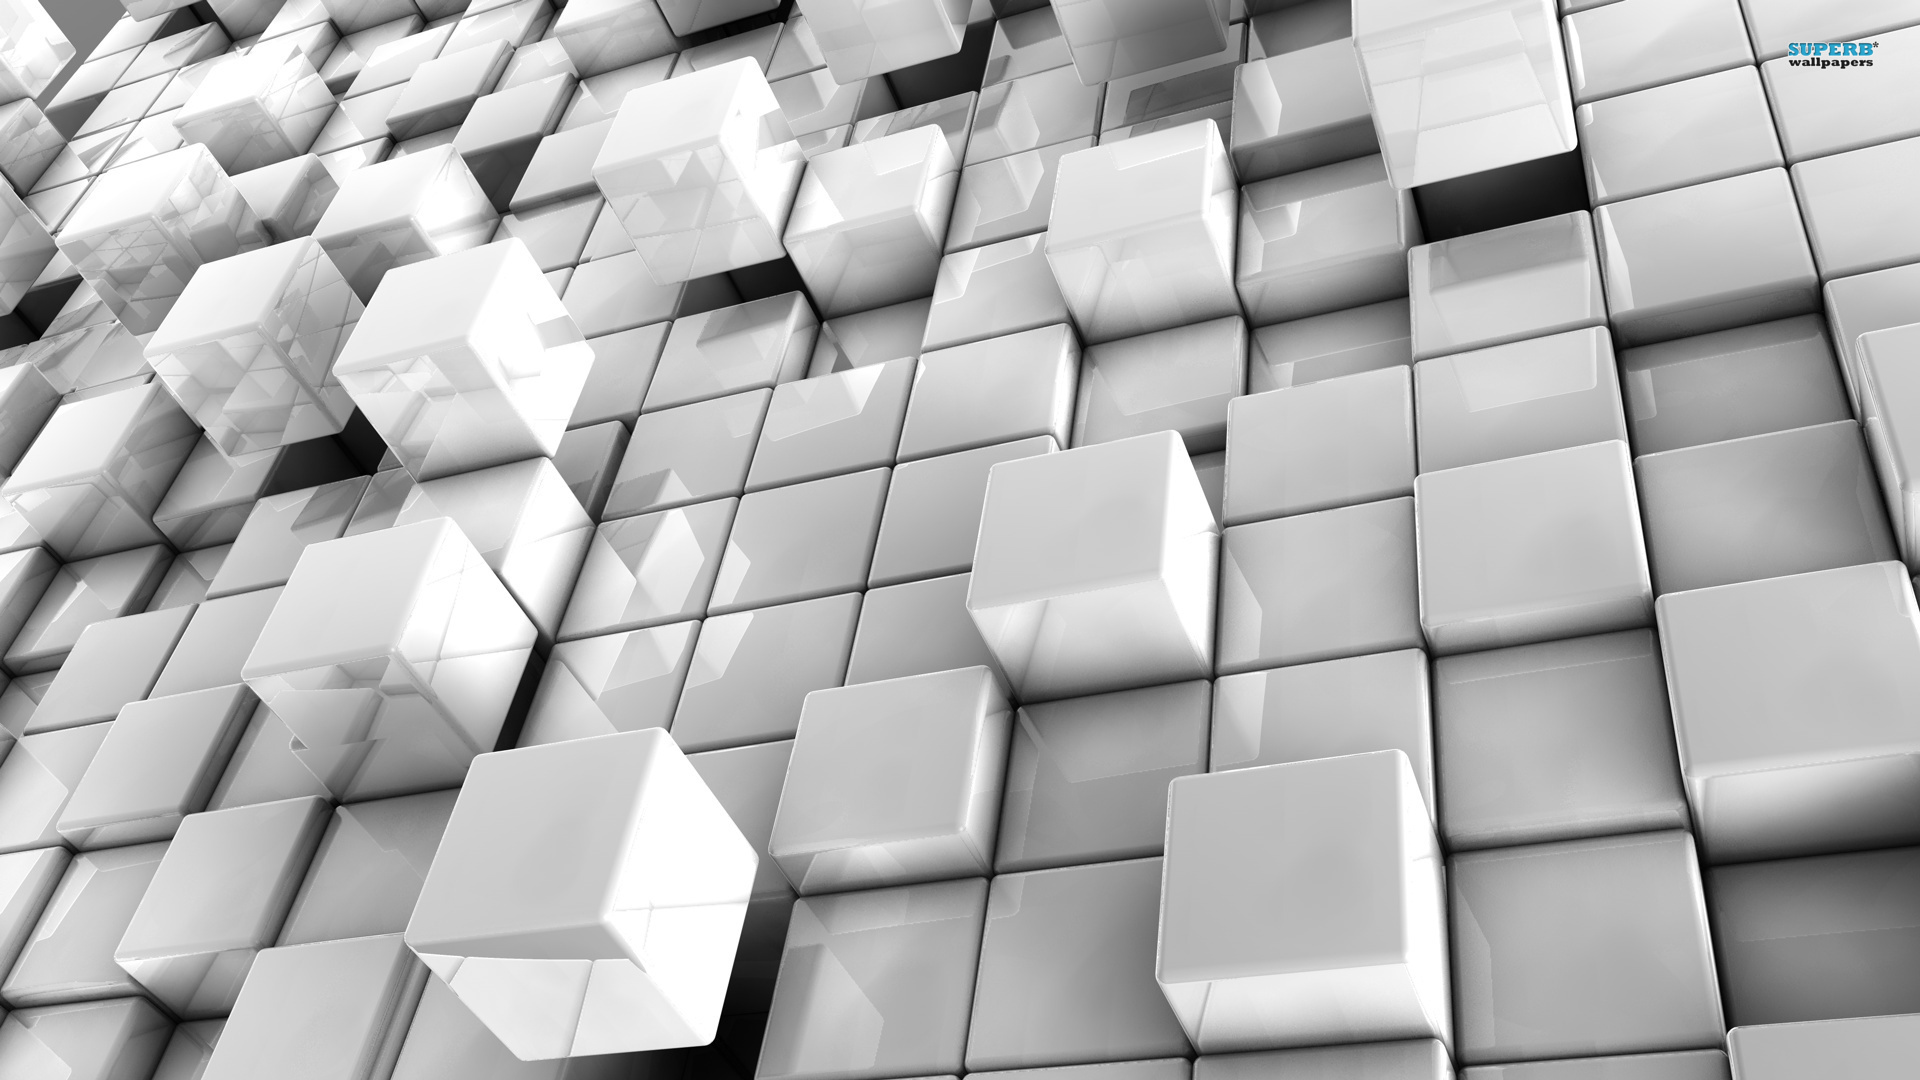 Abstract In White Cubes 402972 Wallpaper